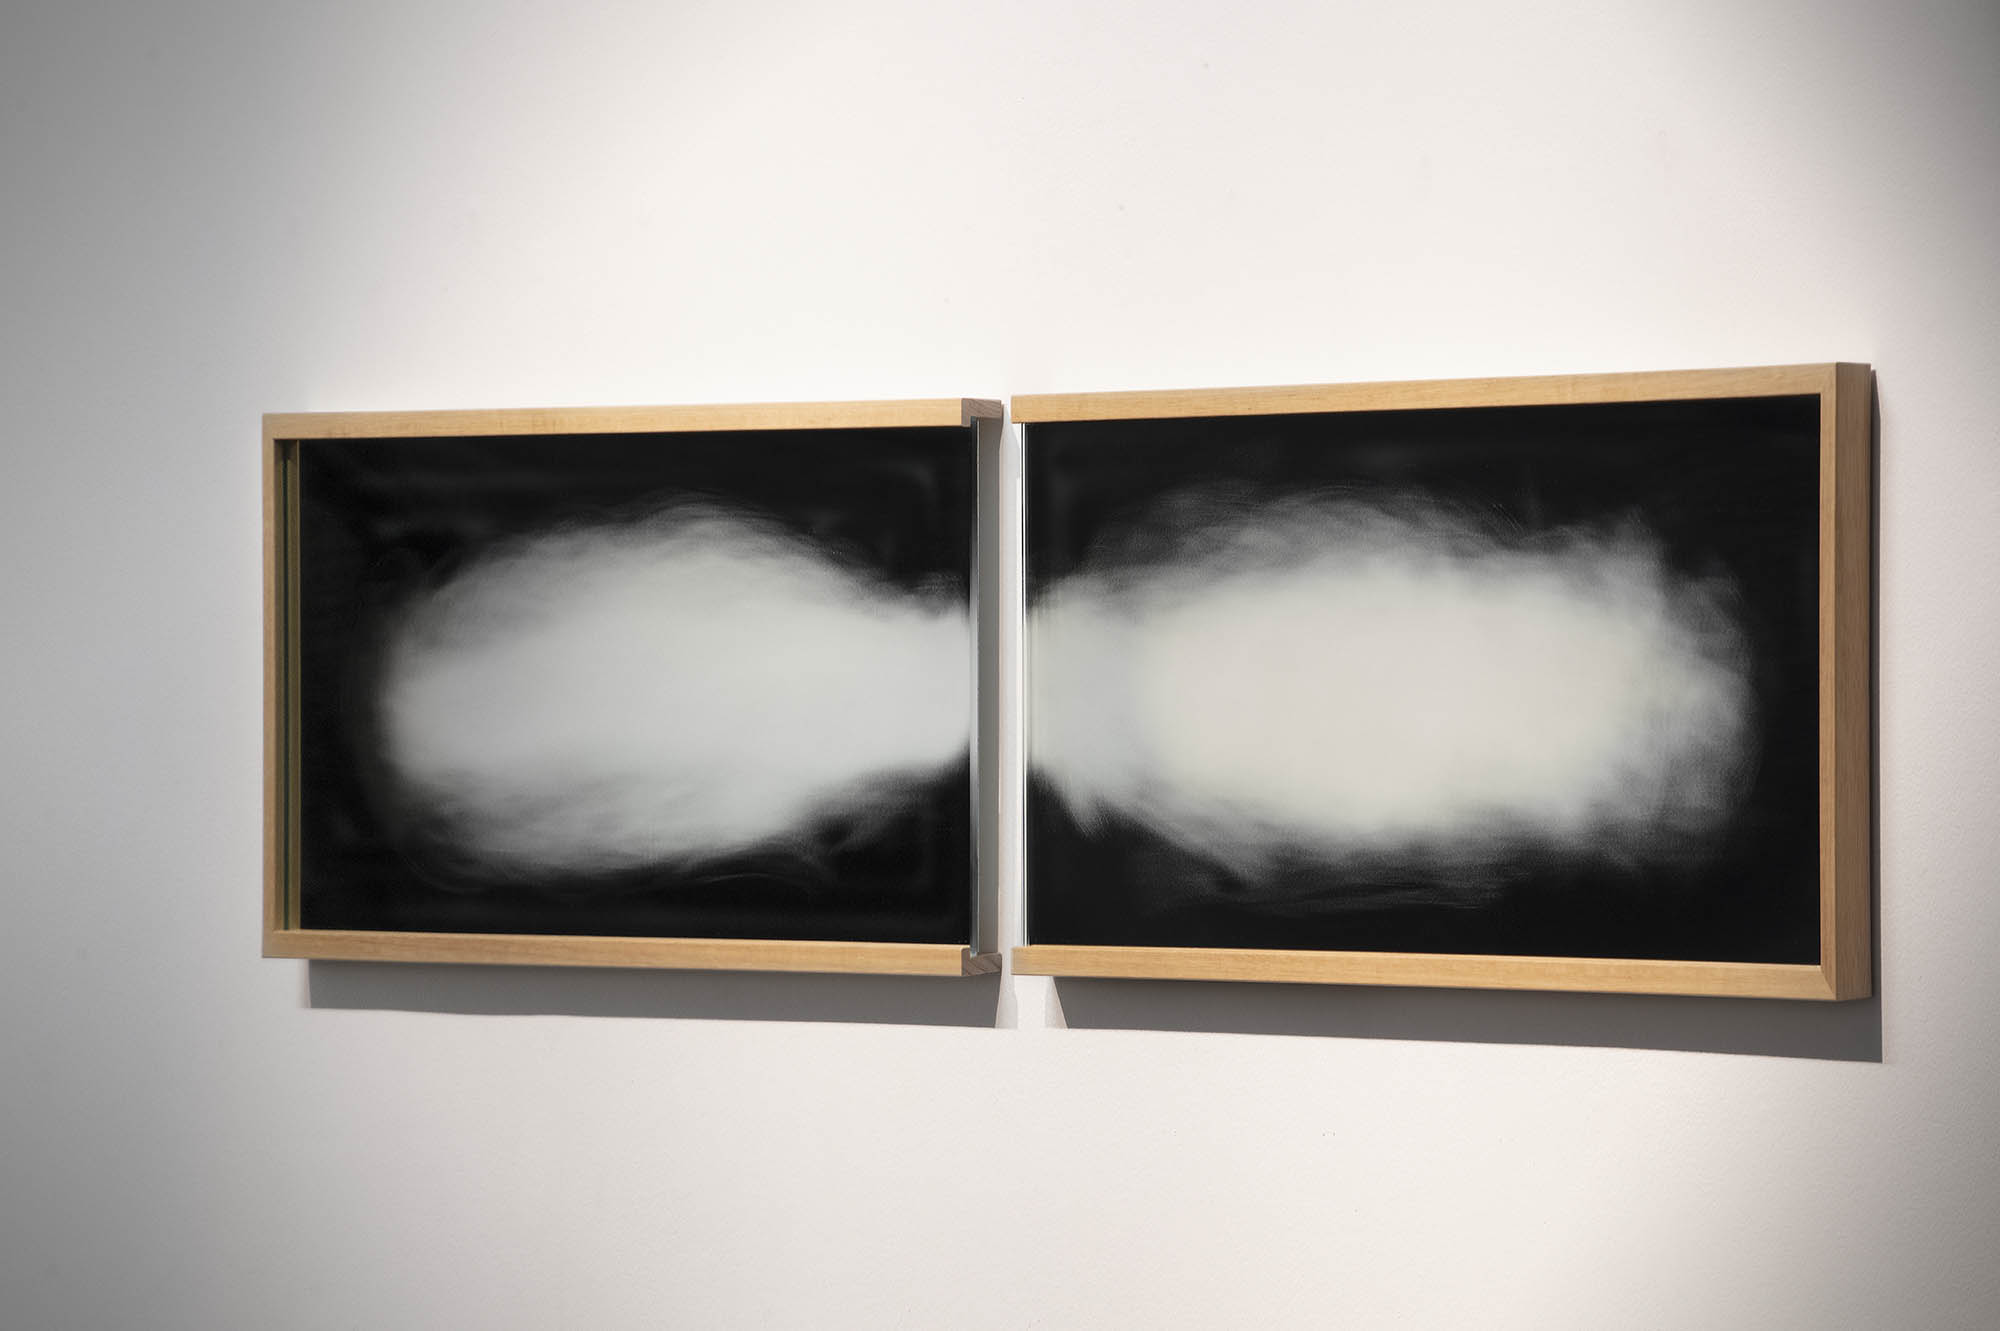 """JULIE RRAP  """"Signs of Life"""" (first and last),  2019 Hand ground mirror and wooden frame  33 x 186 cm Photograph by John Gollings"""